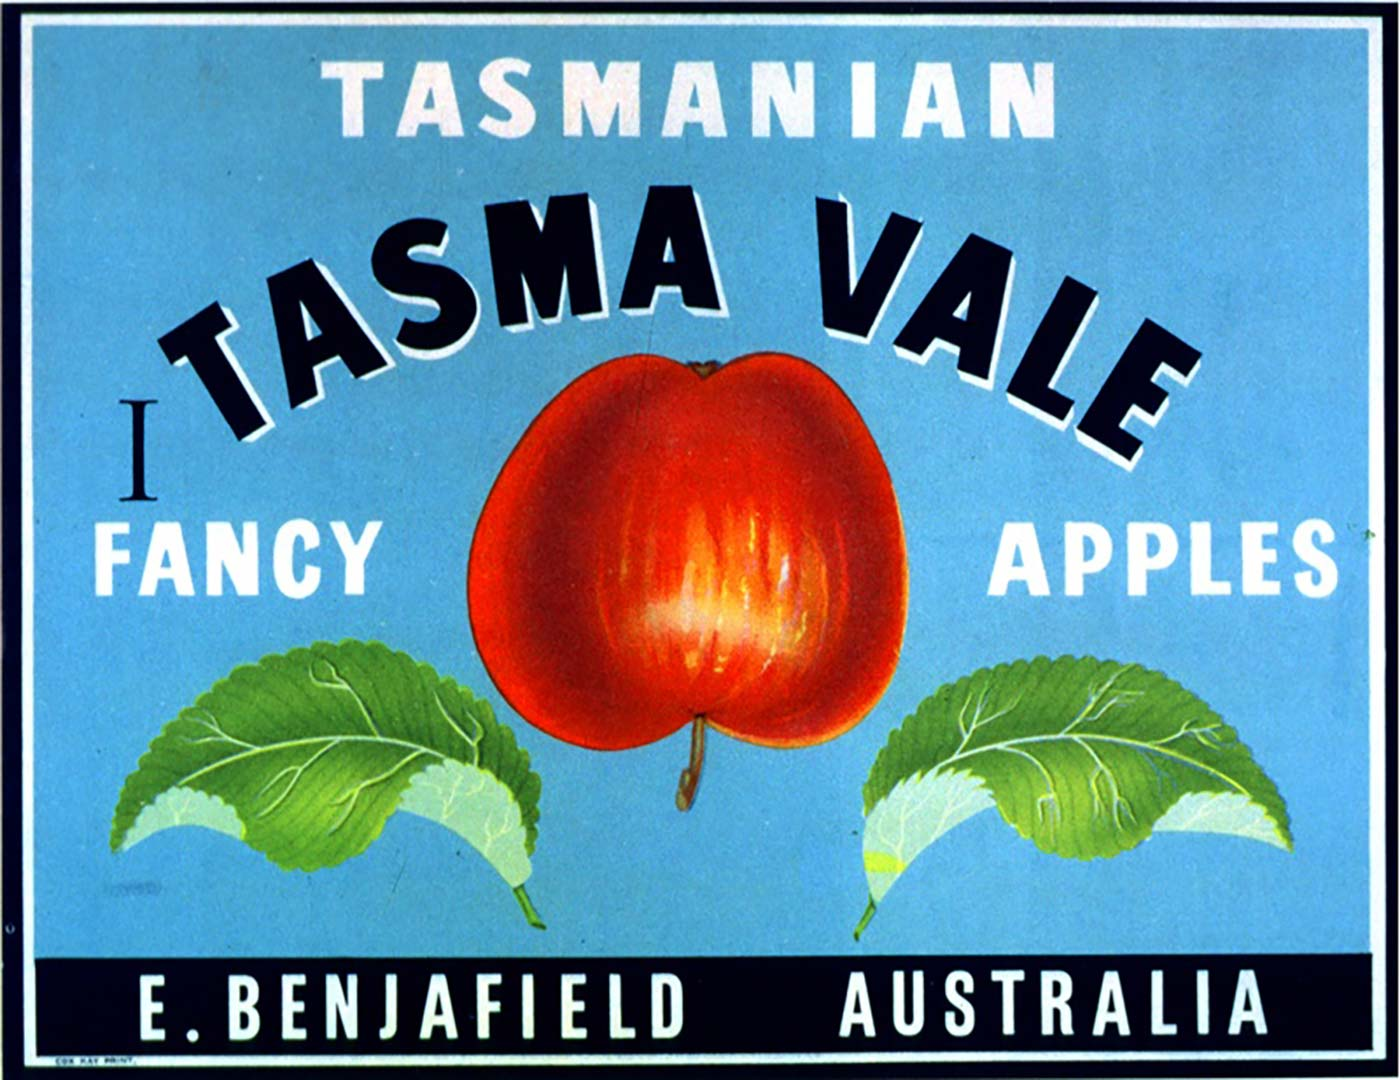 A label that has an image of an apple. Text reads: 'Tasmanian Fancy Apples. Tasma Vale. E. Benjafield. Australia'.